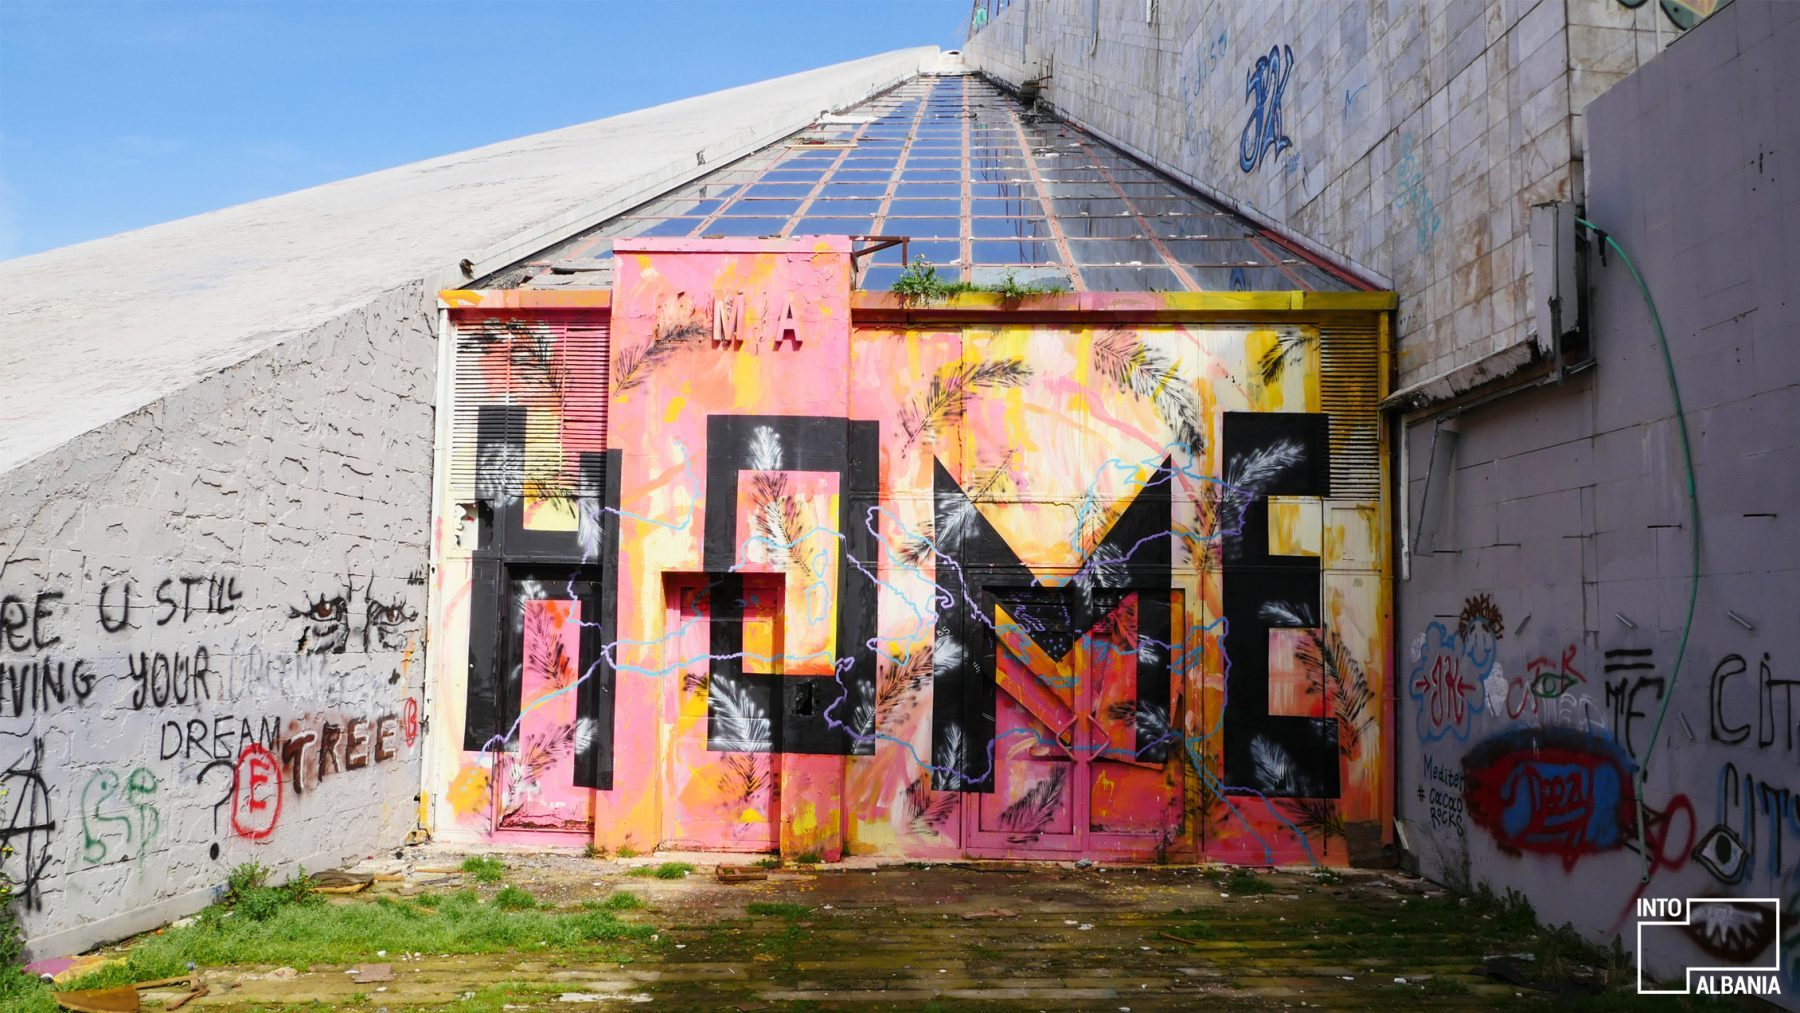 Graffiti at the Pyramid of Tirana, photo by IntoAlbania.